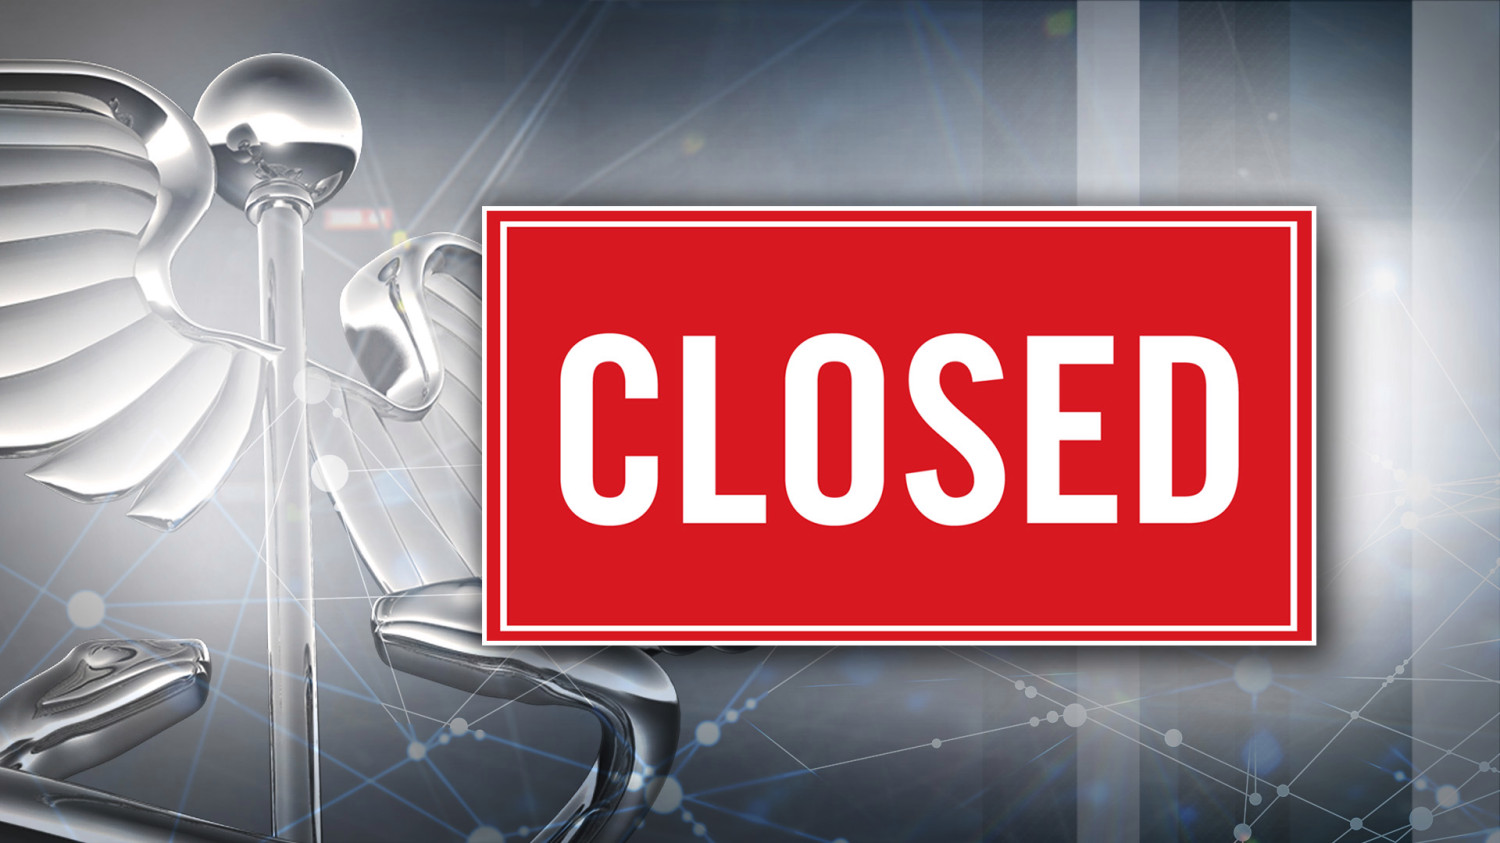 All TMHS Athletics Facilities are CLOSED